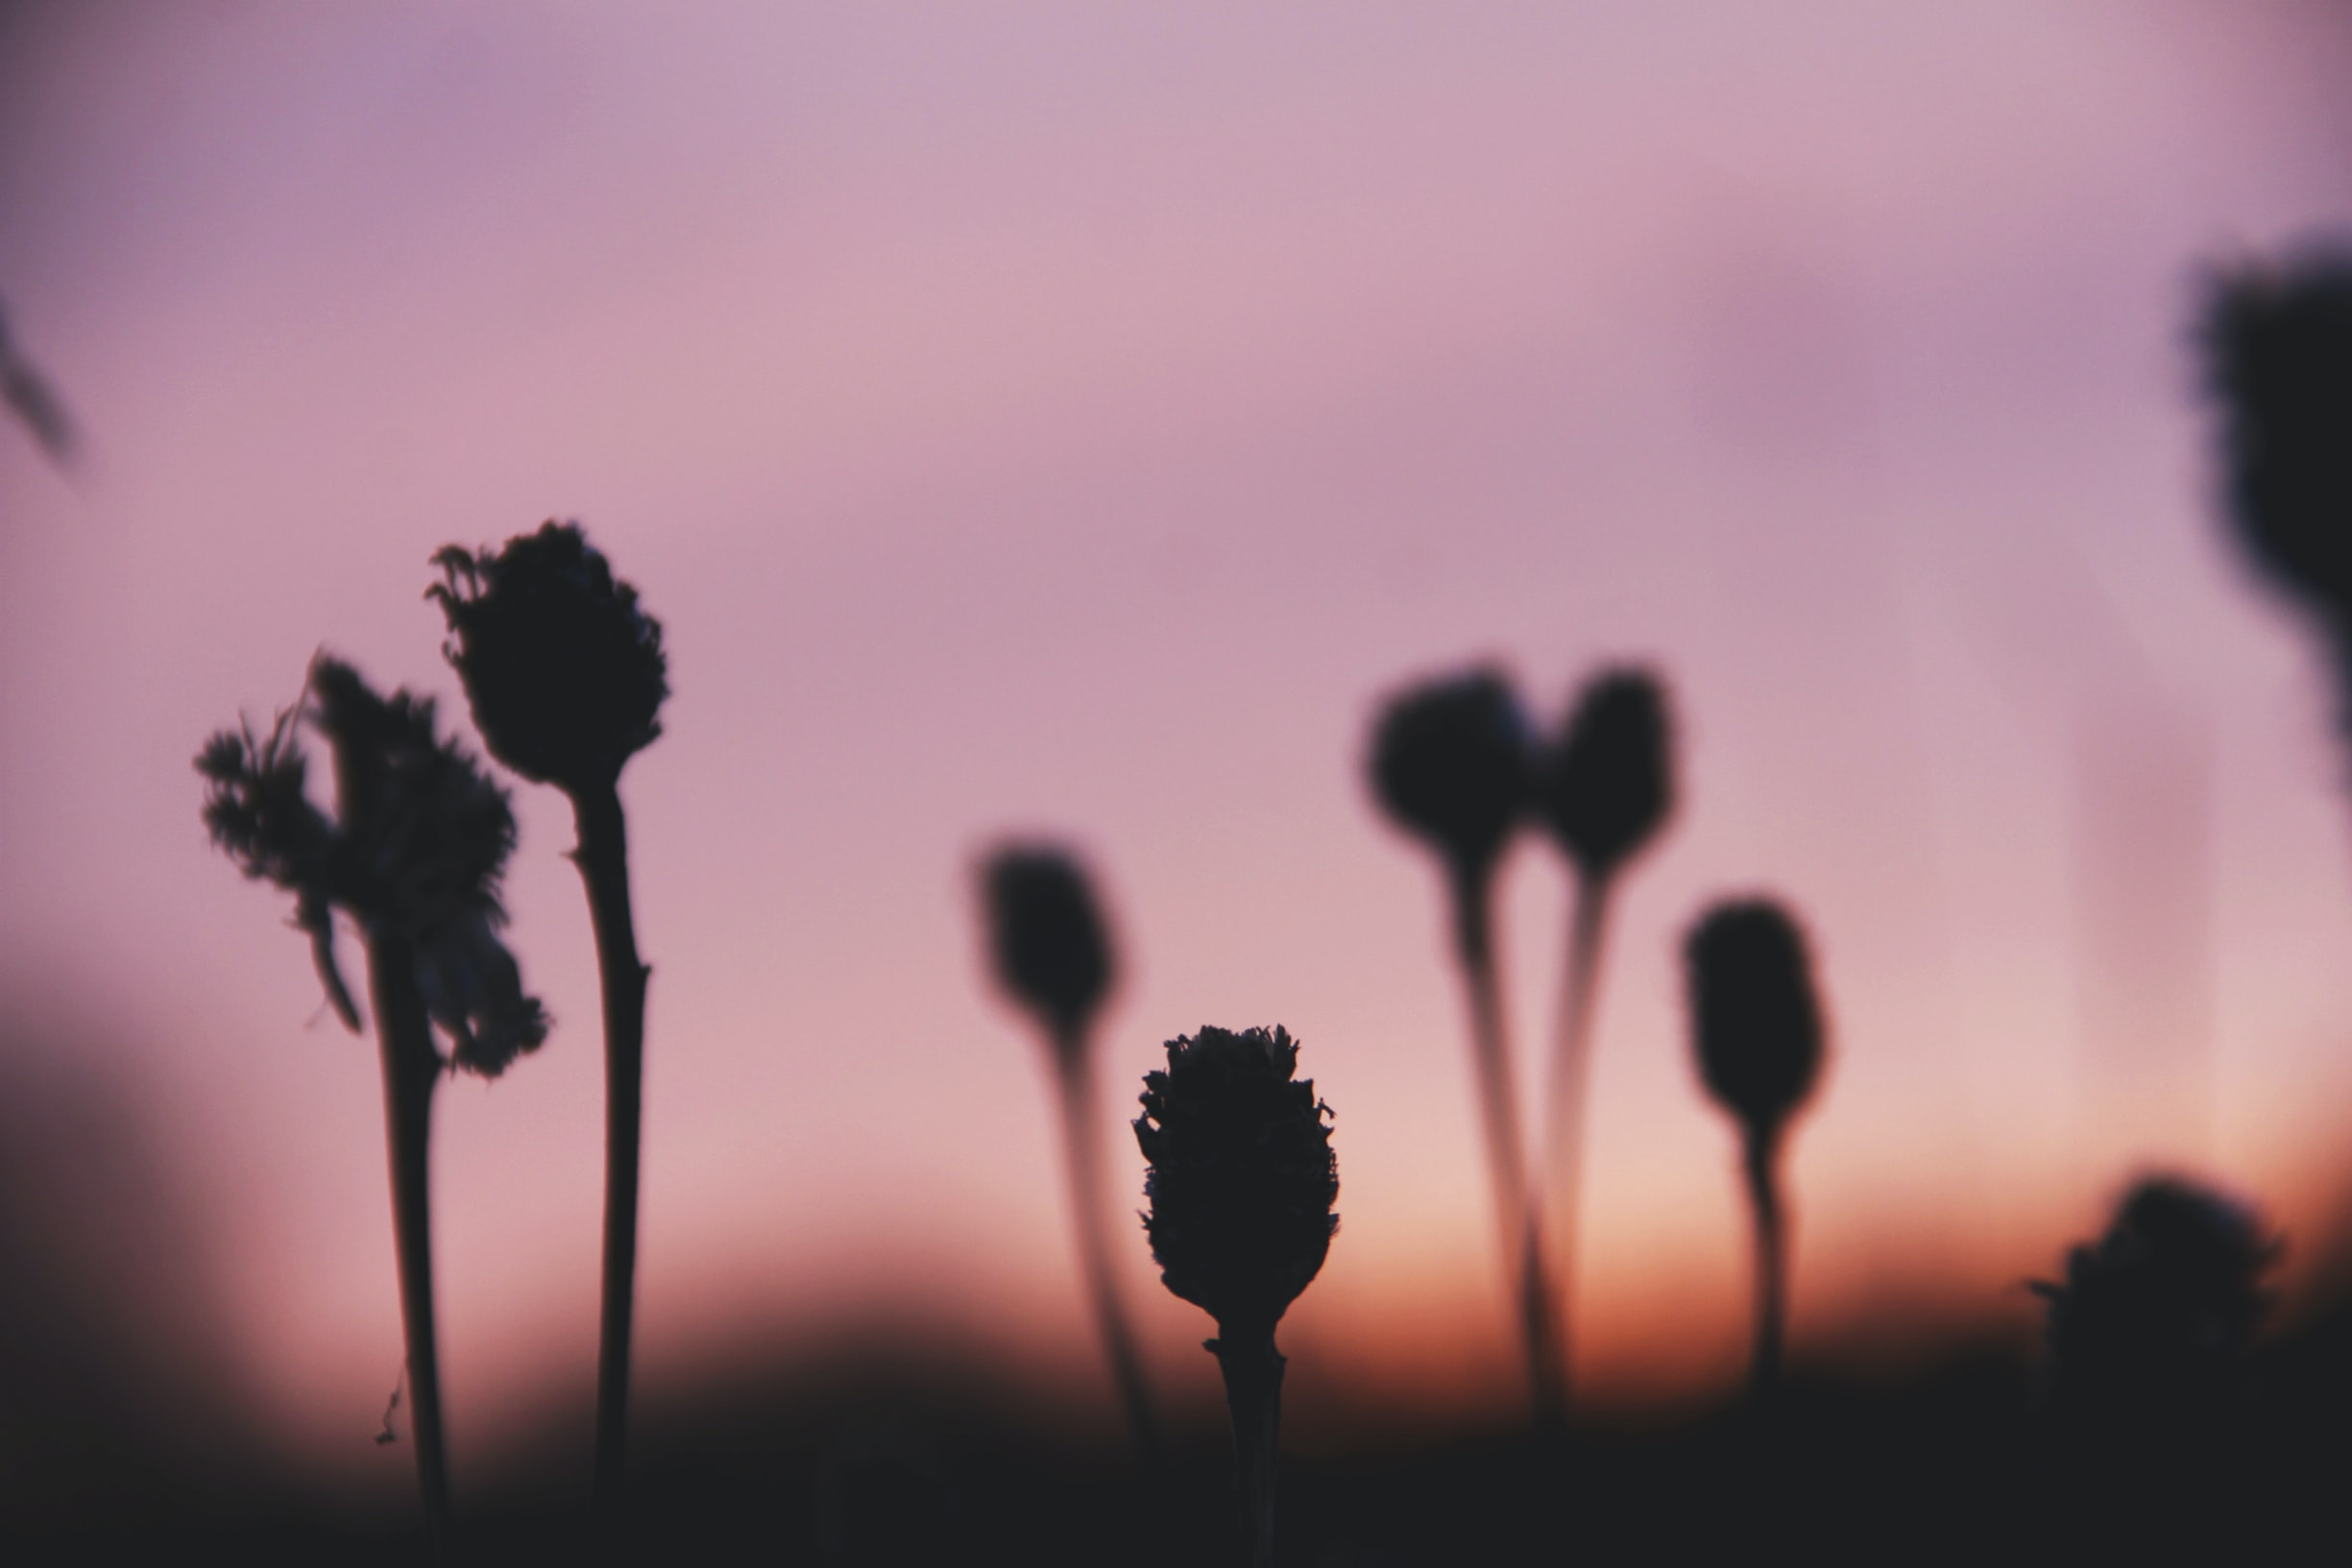 silhouette photo of plants at sunset